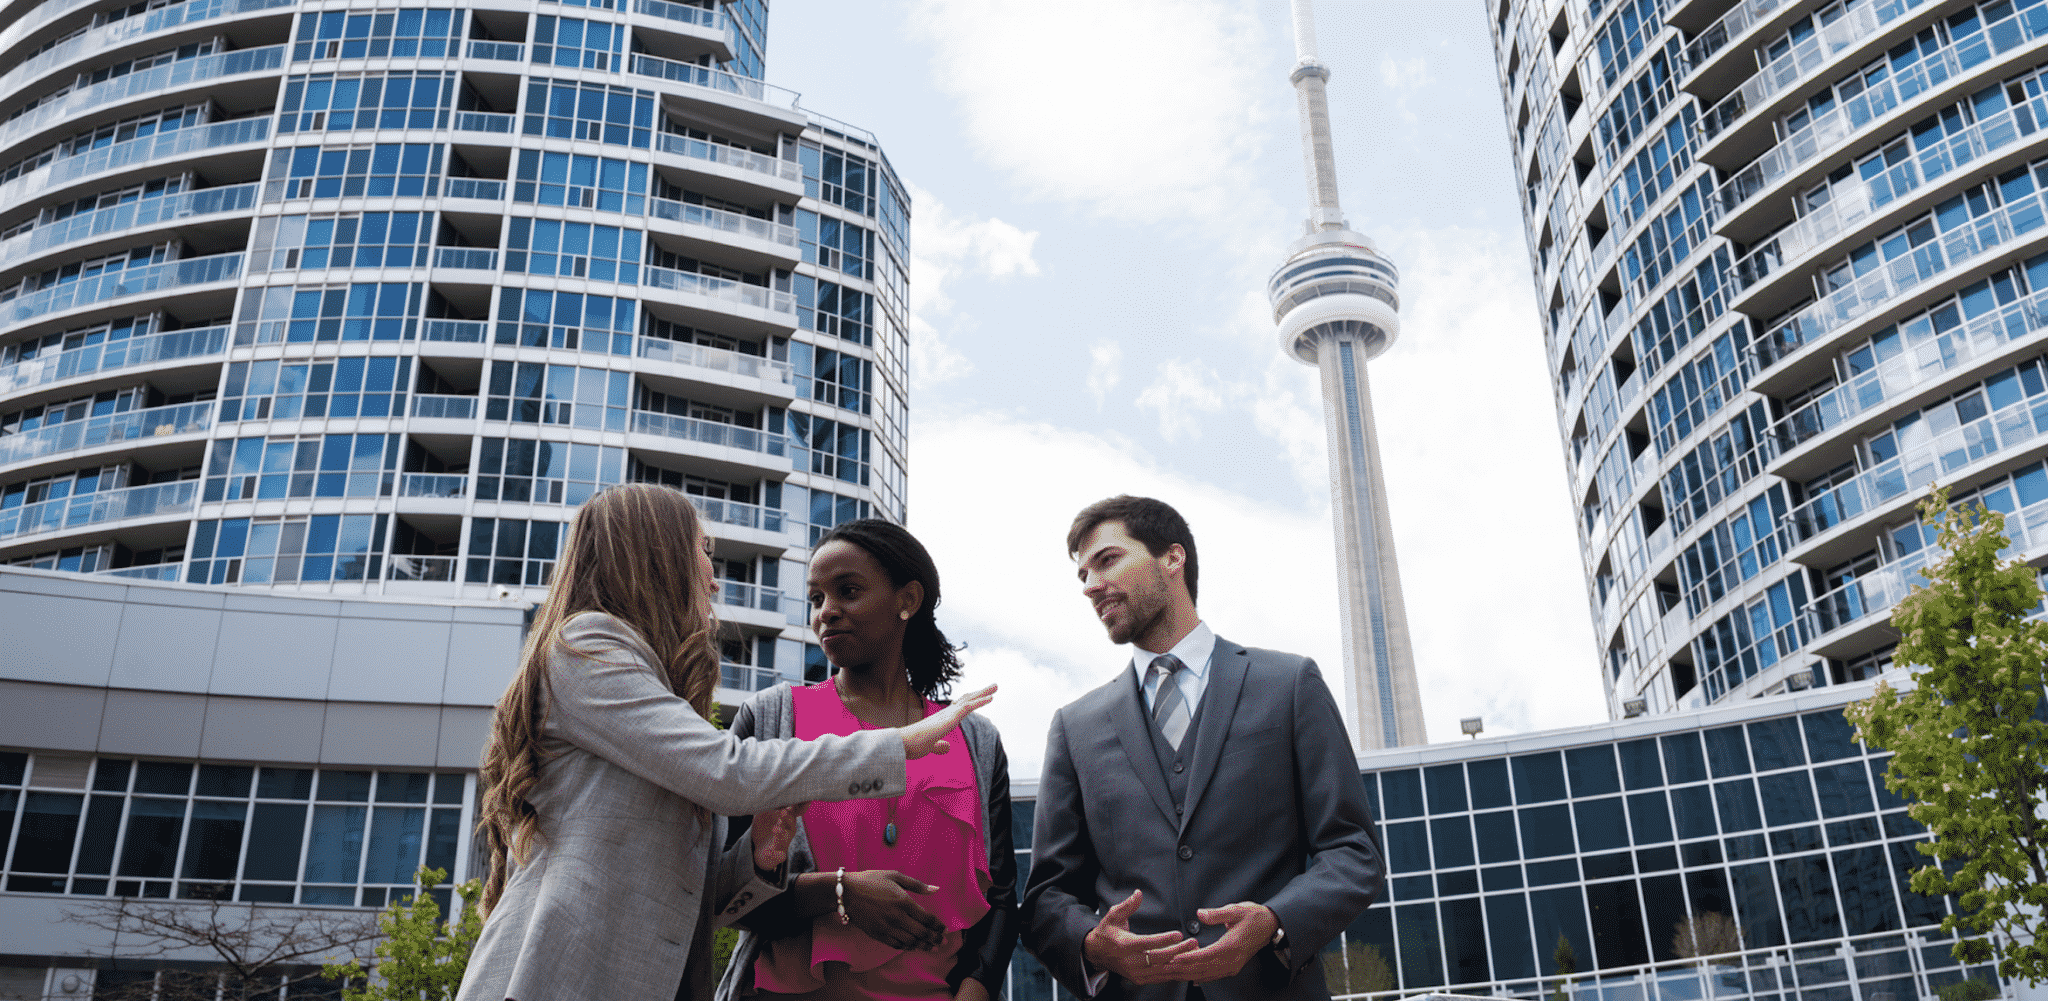 People Discussing Price Of IT Services In Toronto